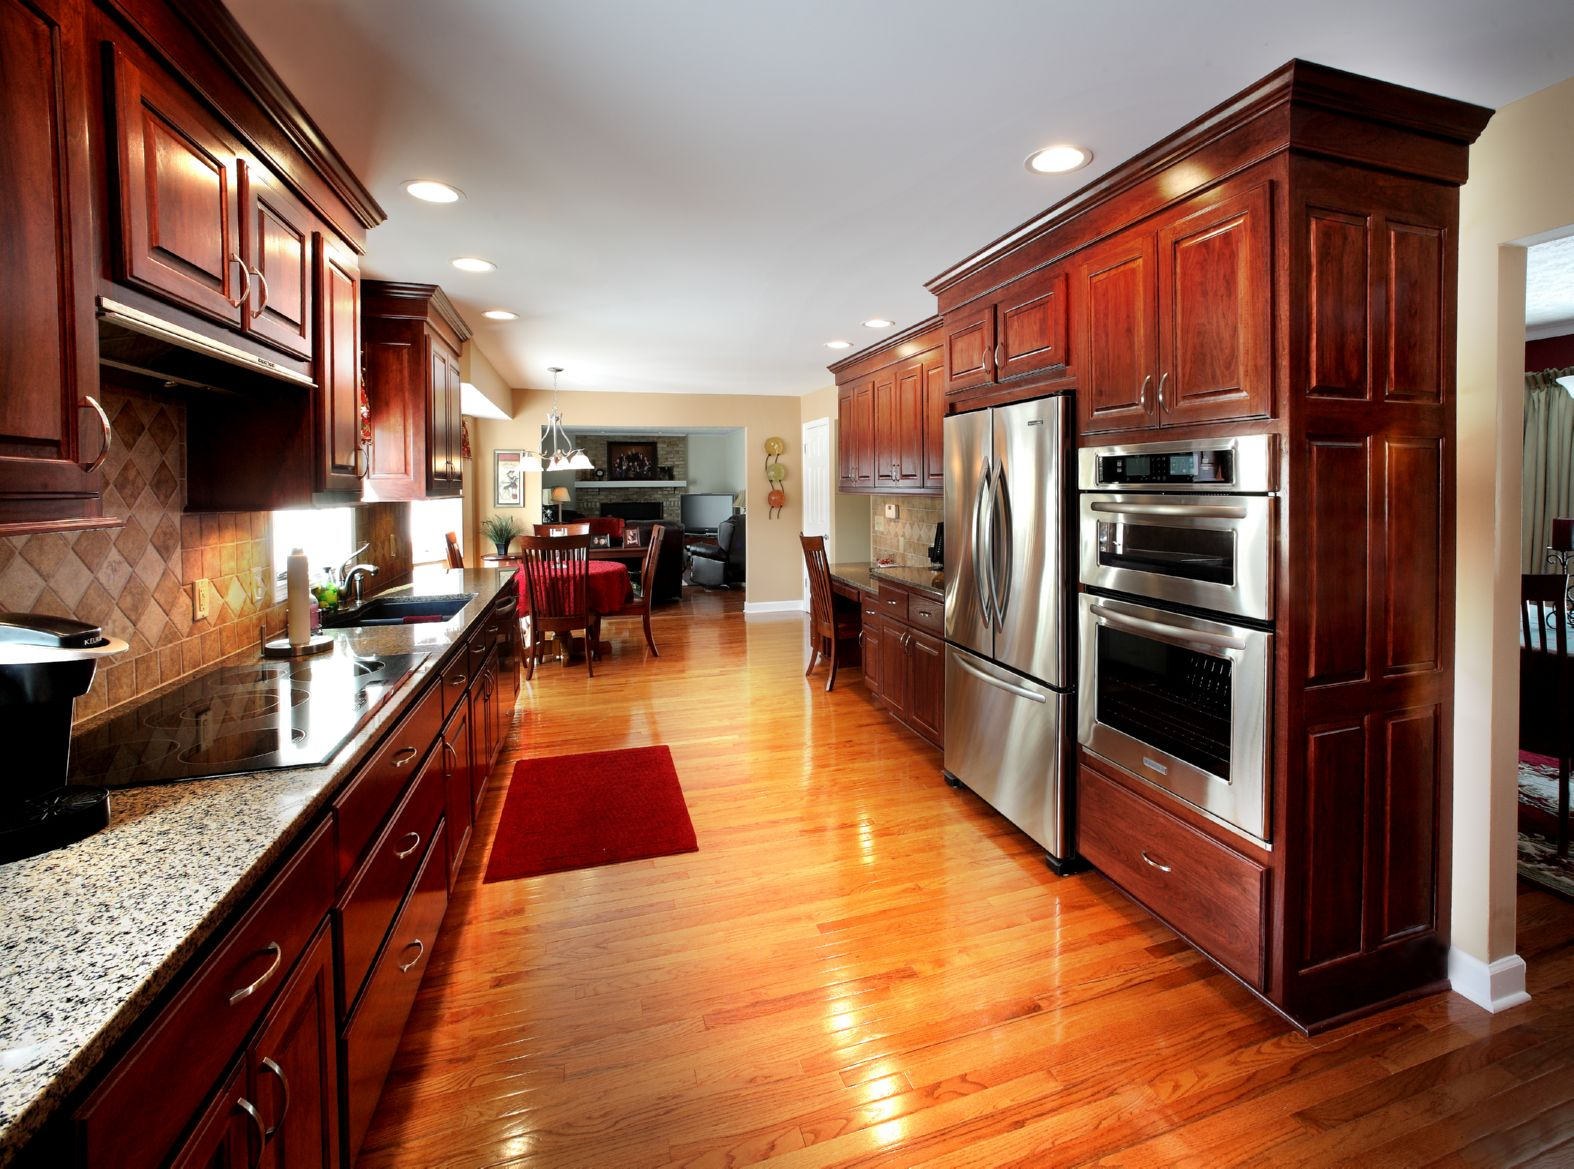 remodeling kitchen cabinets trends tricks and ways to work with your existing cabinetry remodeling kitchen cabinets Want to update your kitchen but the money tree isn t in full bloom yet